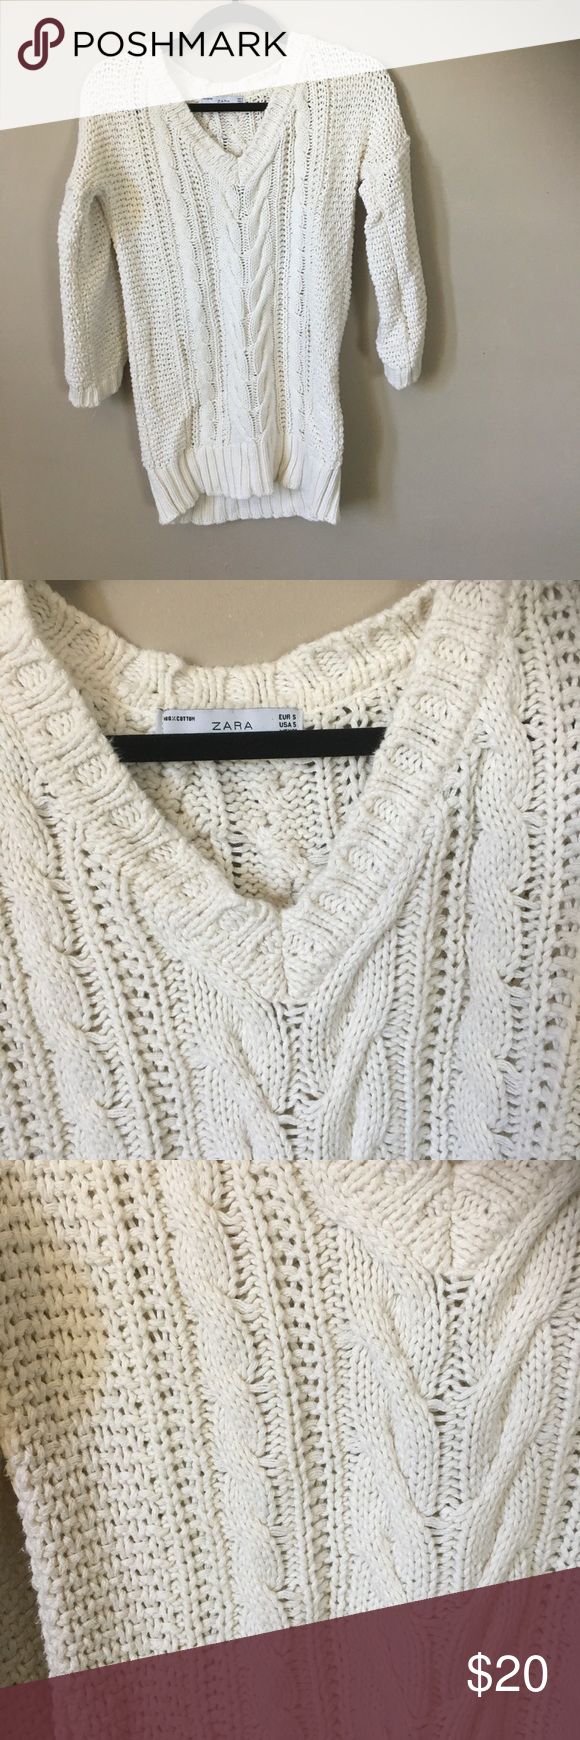 Zara cable knit sweater size small - off white | Cable knit ...